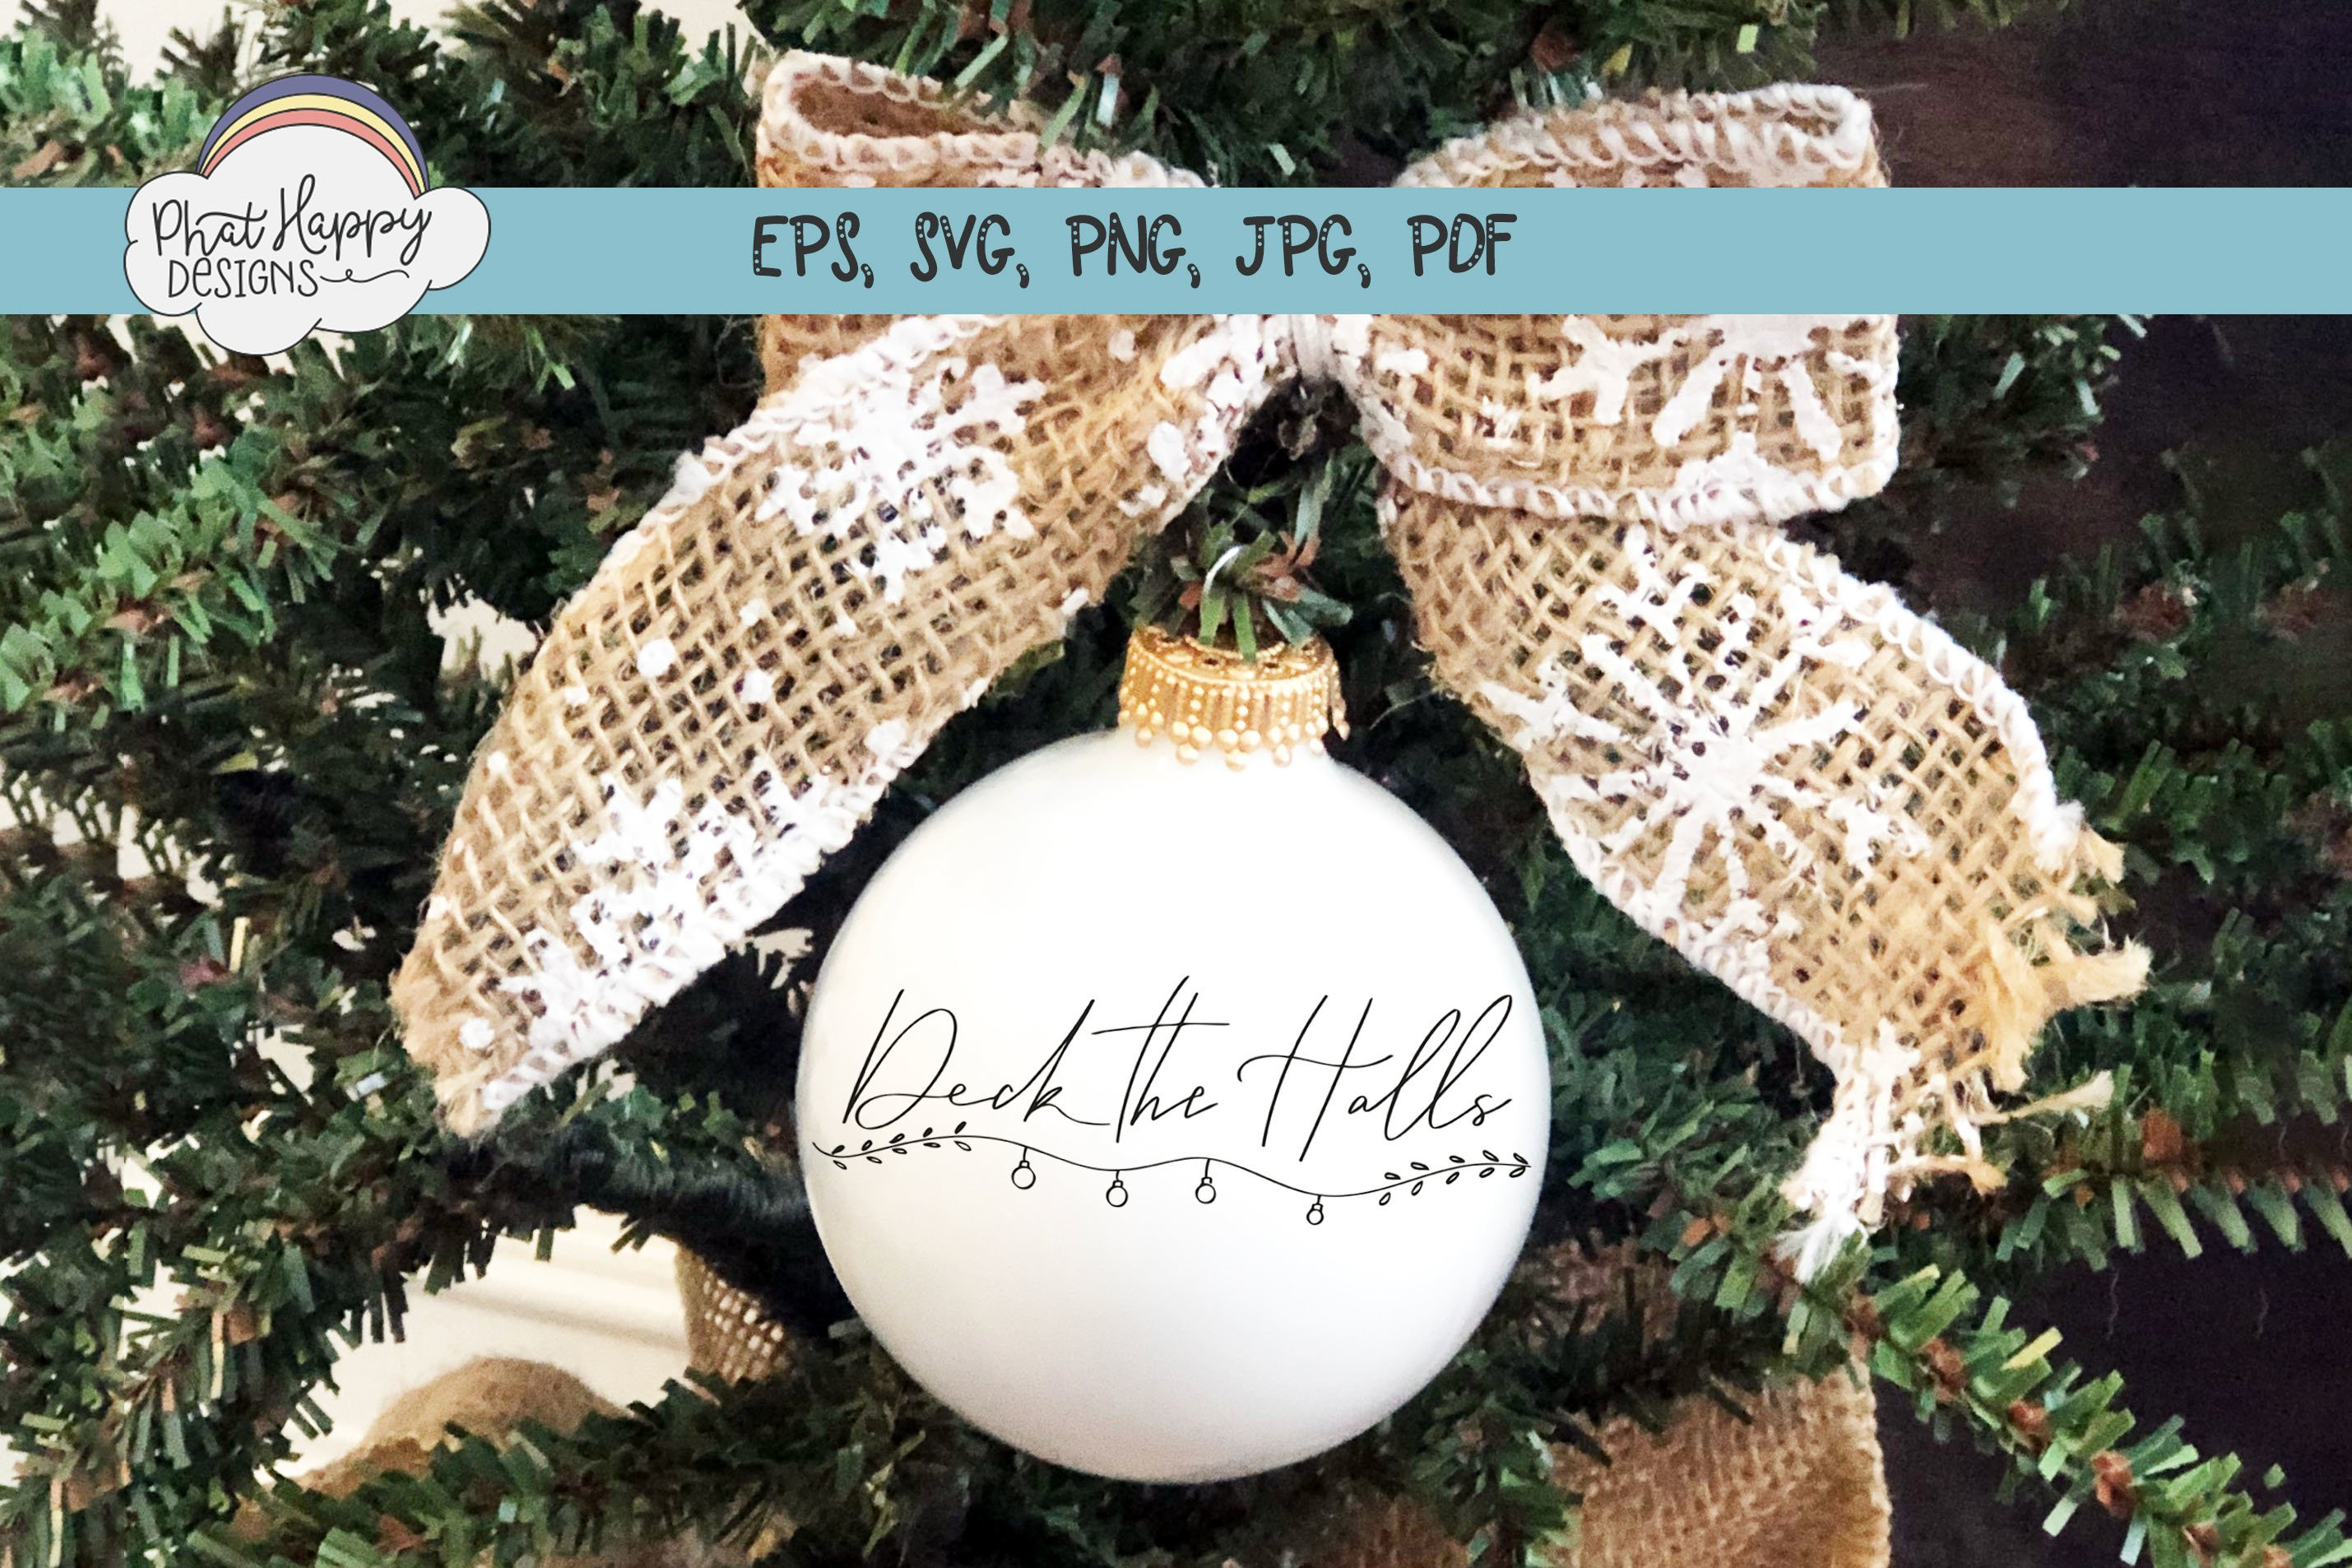 Deck the Halls - Hand Lettered Christmas SVG example image 2